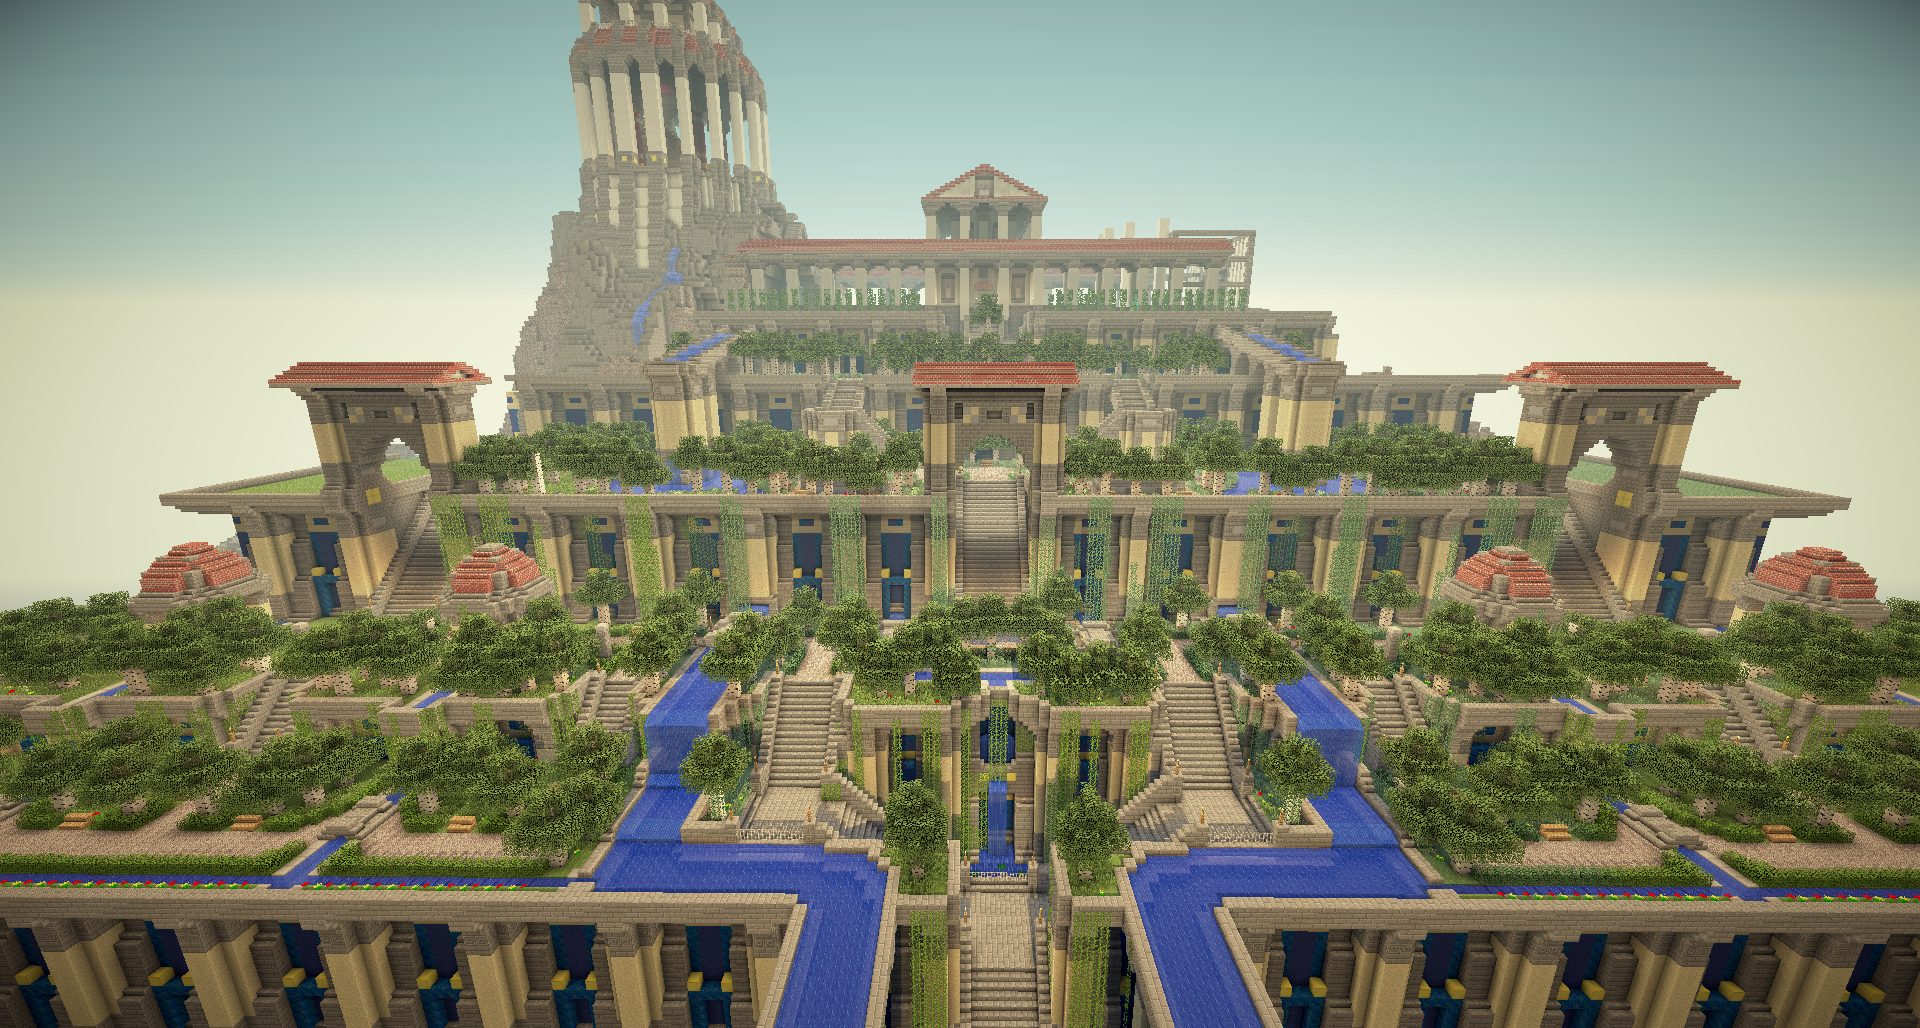 Oh you know just the hanging gardens of babylon minecraft - What are the hanging gardens of babylon ...